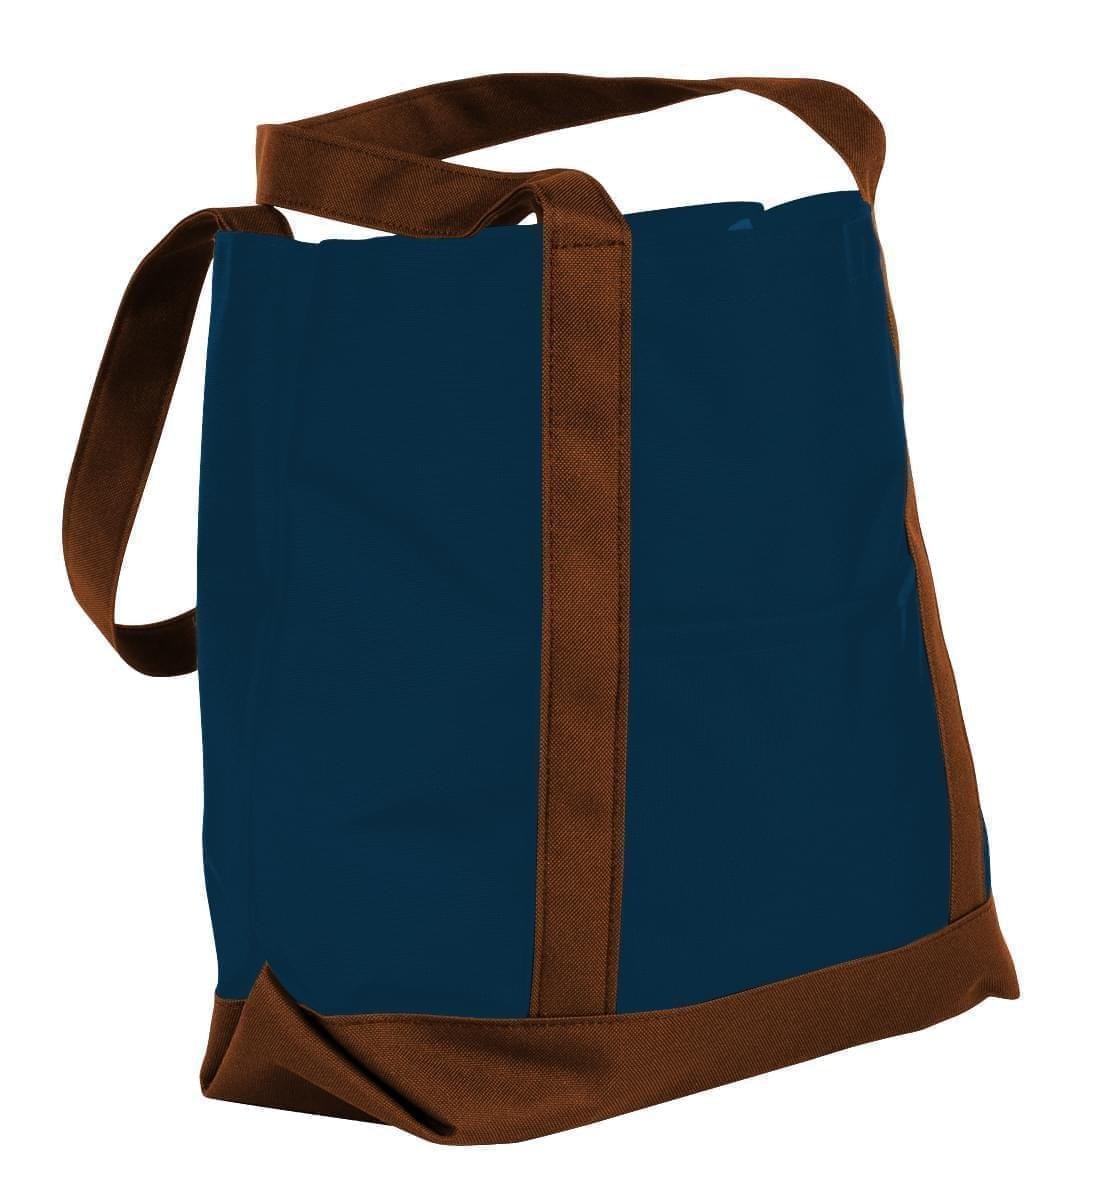 USA Made Canvas Fashion Tote Bags, Navy-Brown, XAACL1UACD